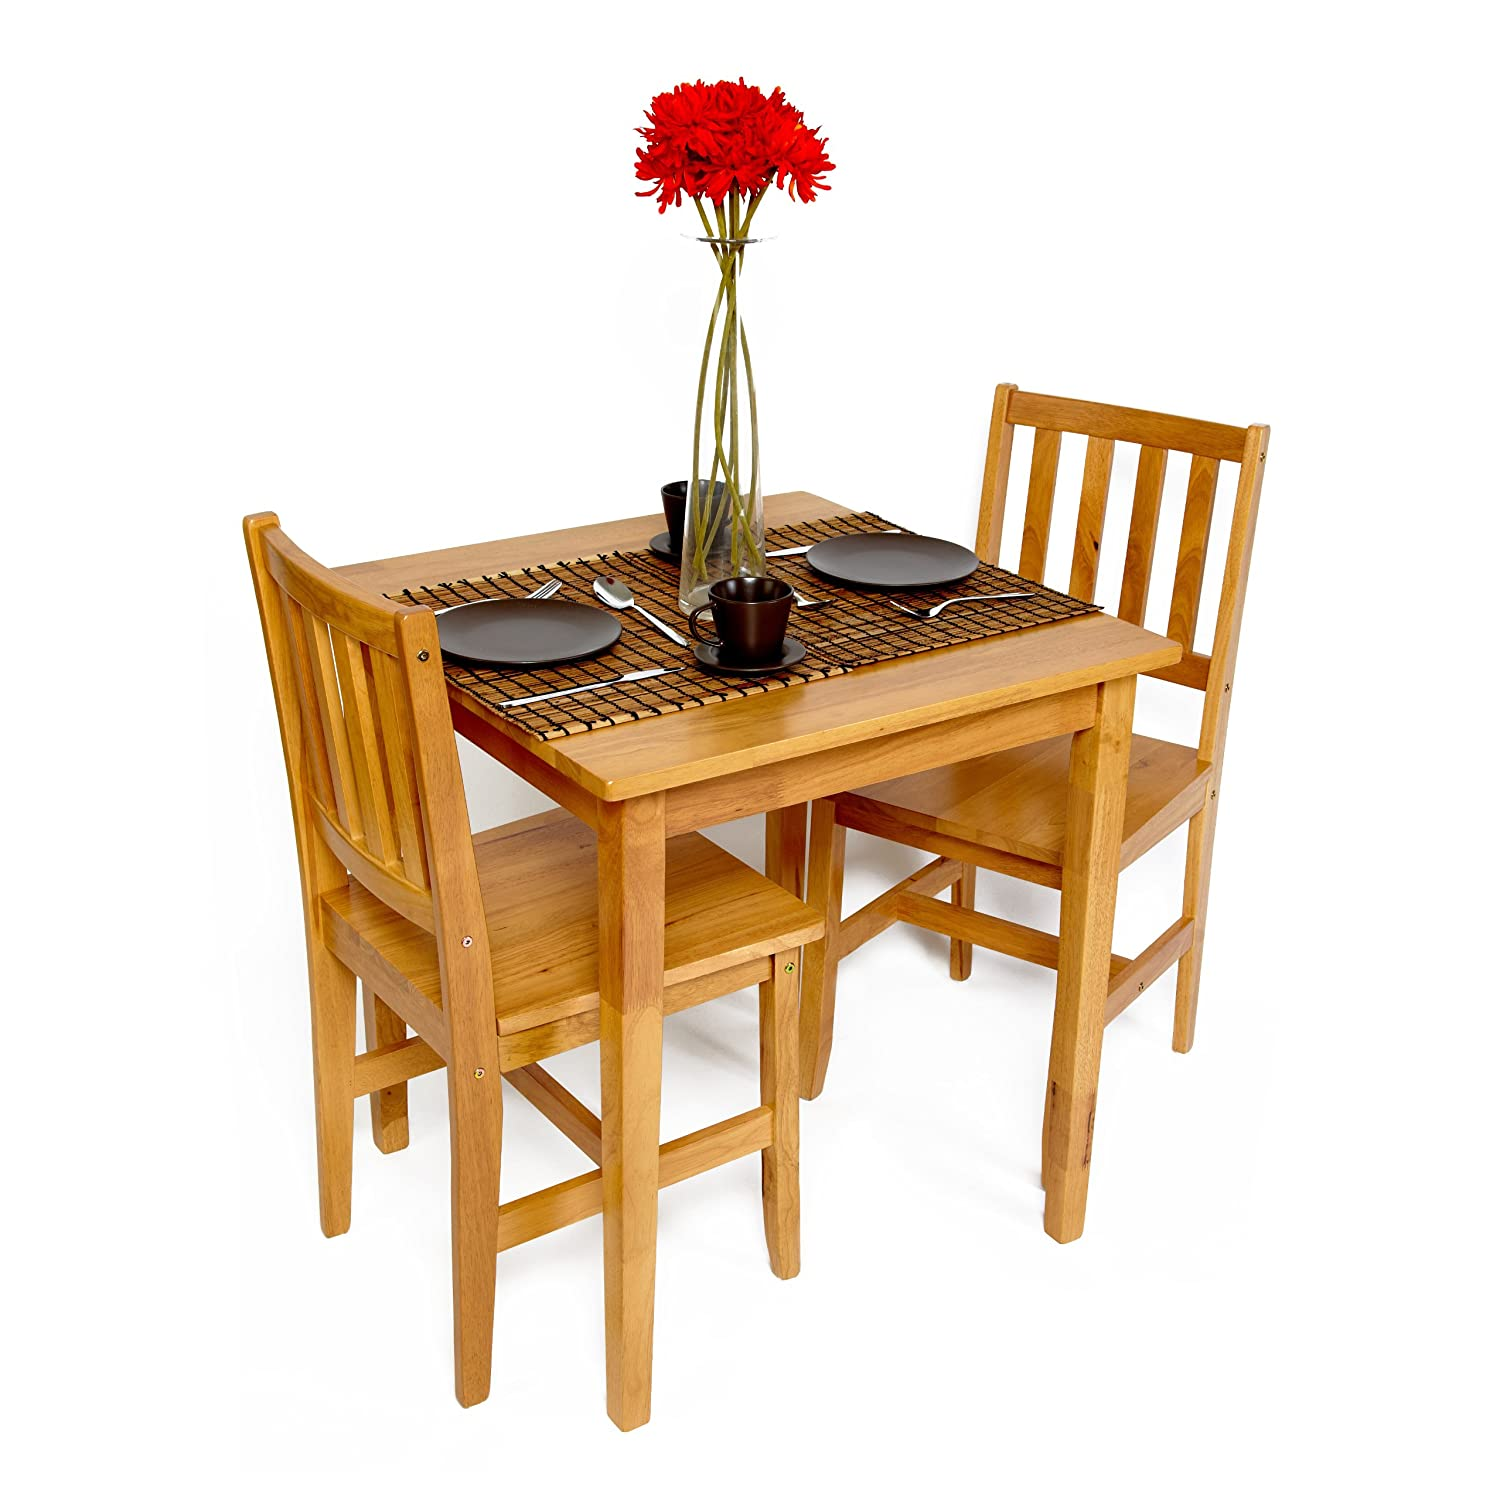 Table and chairs set dining bistro small cafe tables wood for Kitchen dining table chairs